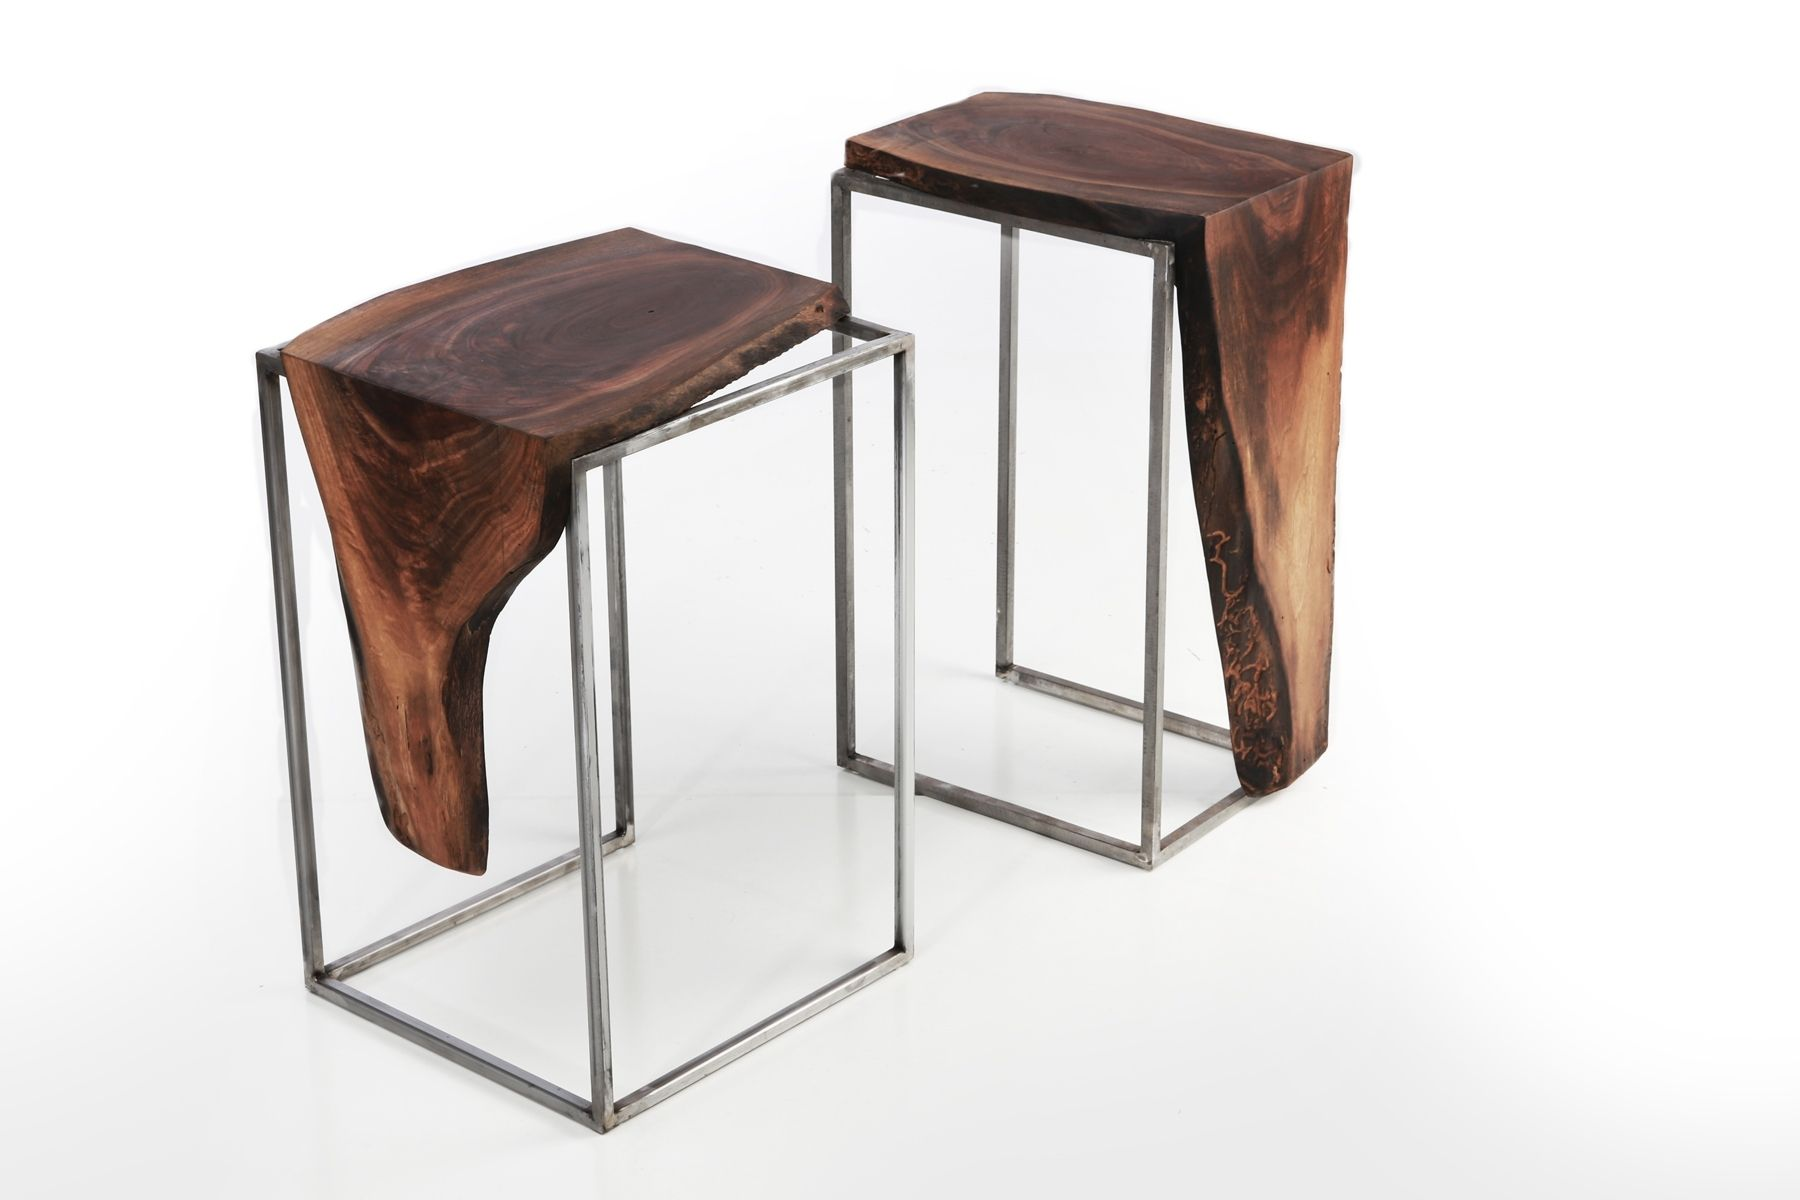 hand crafted side table solid black walnut top with metal base by anton maka designs. Black Bedroom Furniture Sets. Home Design Ideas